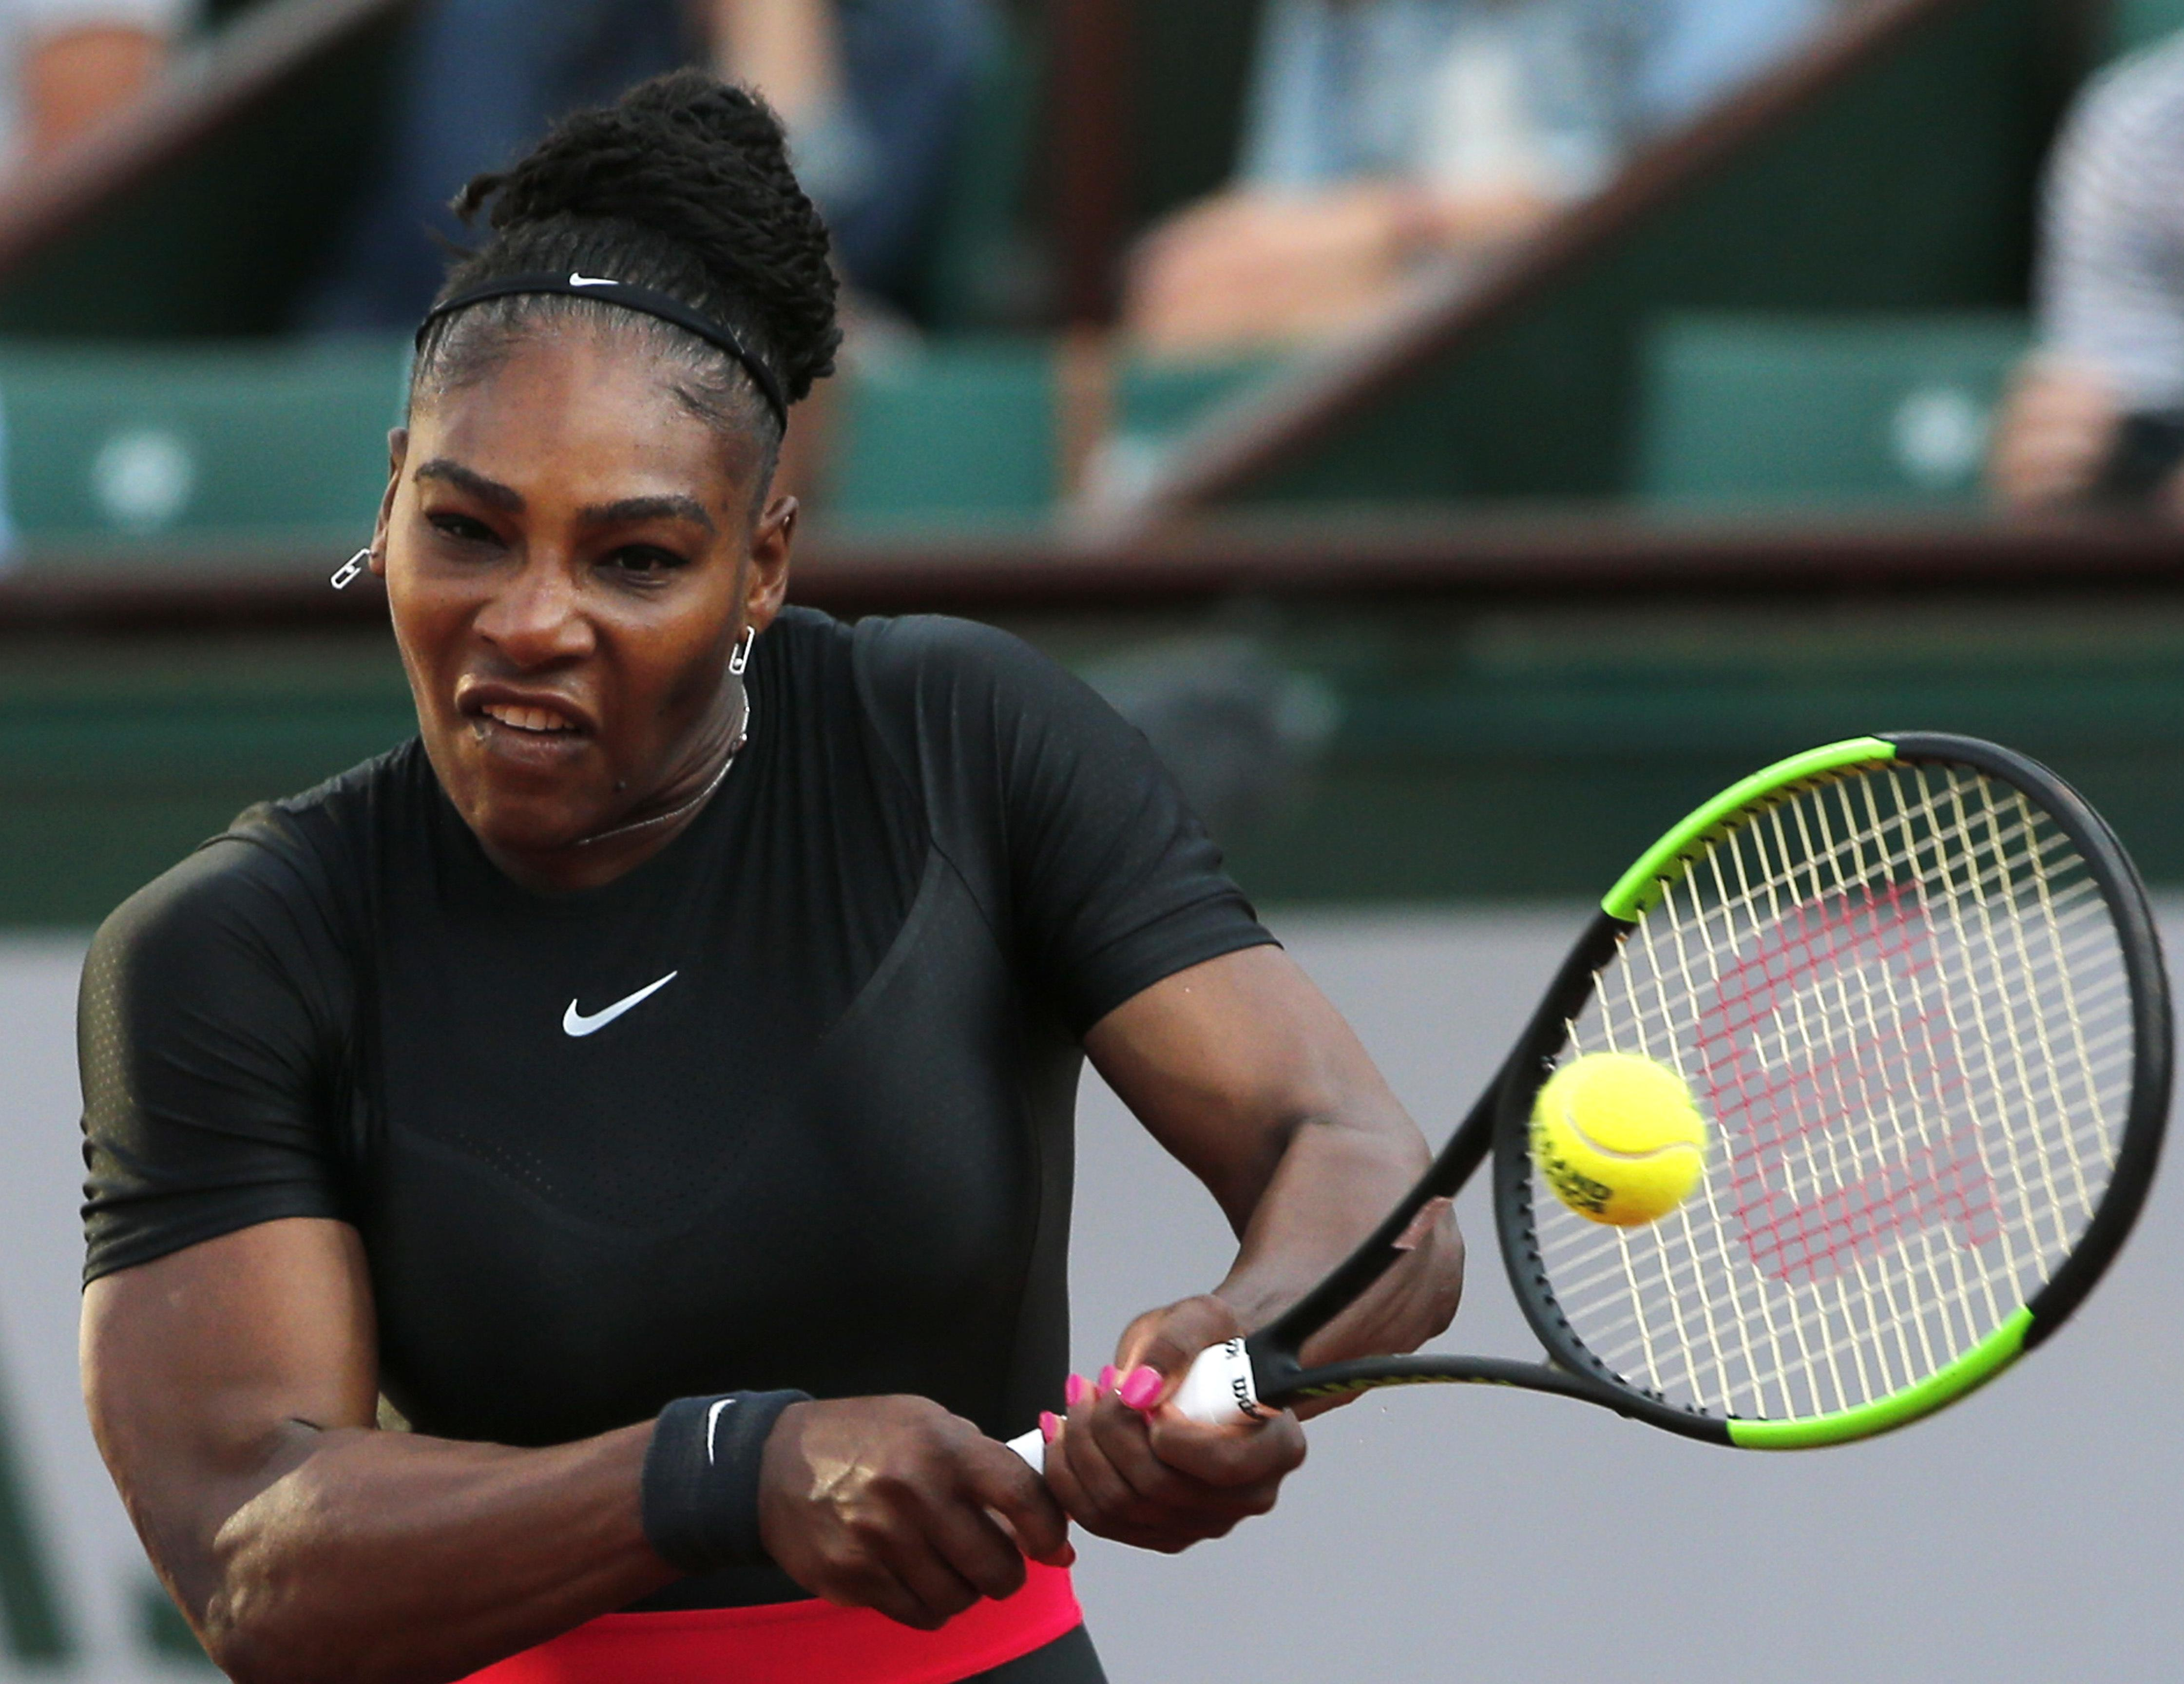 French tennis chief Bernard Giudicelli said Williams had to show the game more respect